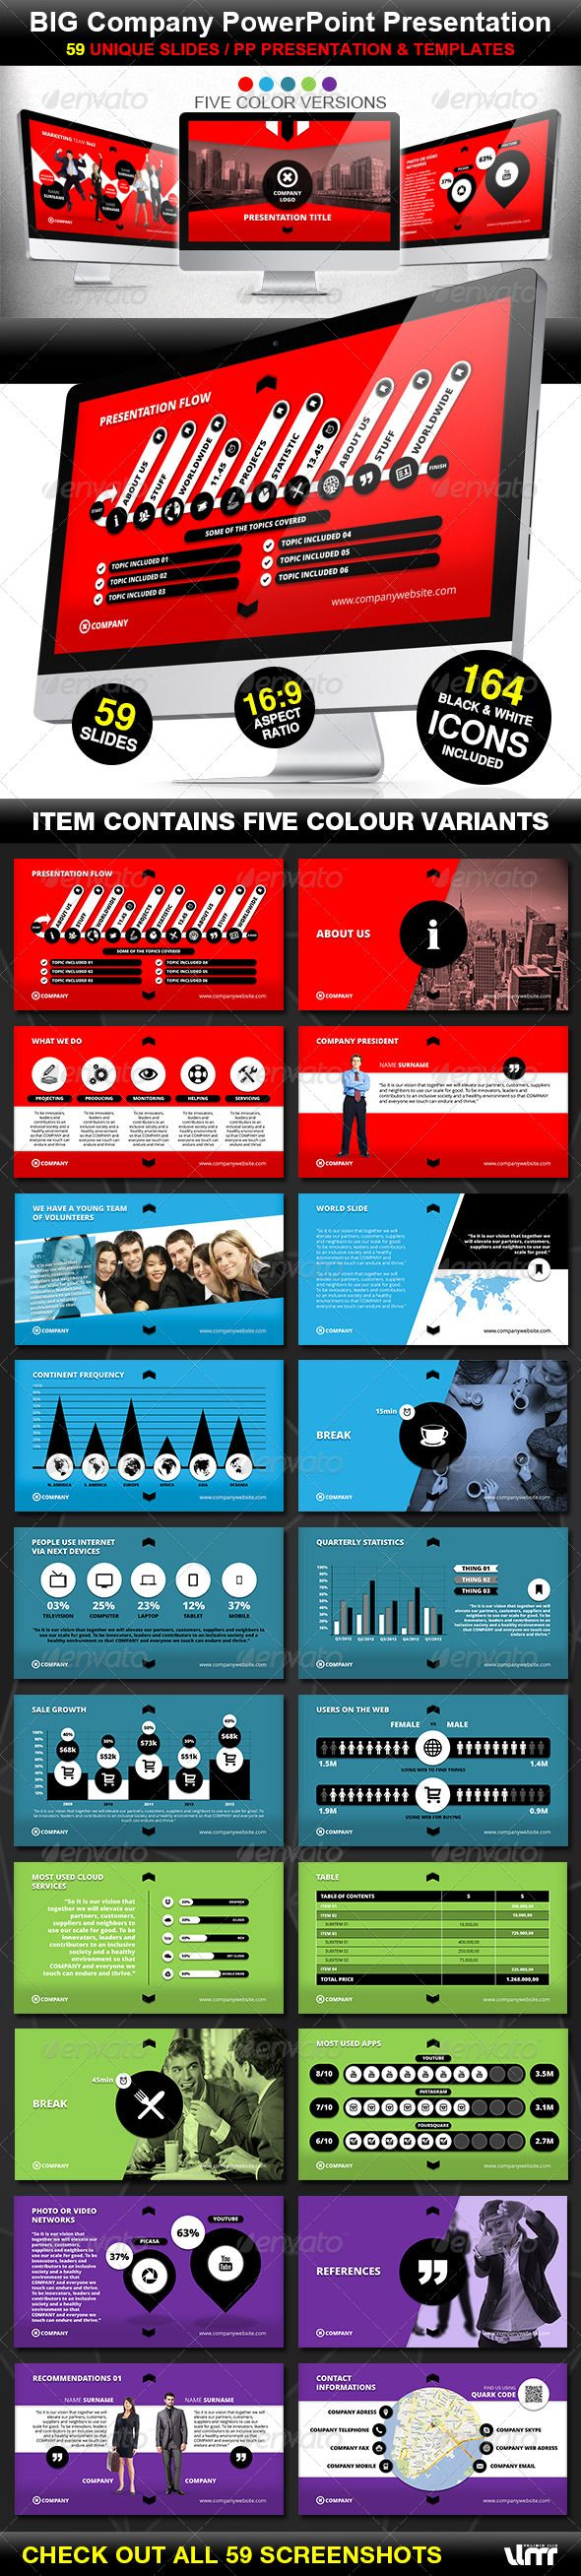 Big Company PowerPoint Prezentation Template #presentation #powerpoint #pp #company #business #proposal #in #info #information #ppt #clean #simple #blue #black #page #pages #slide #slides #catalog #template #agency #corporate #firm #contact #office #graph #graphic #pie #chart #creative #design #dinamic #economy #economic #firm #multipurpose #offer #proposal #growth #promo #idea #infographic #marketing #modern #purple #green #colorful #project #work #social #network #structure #team #members…